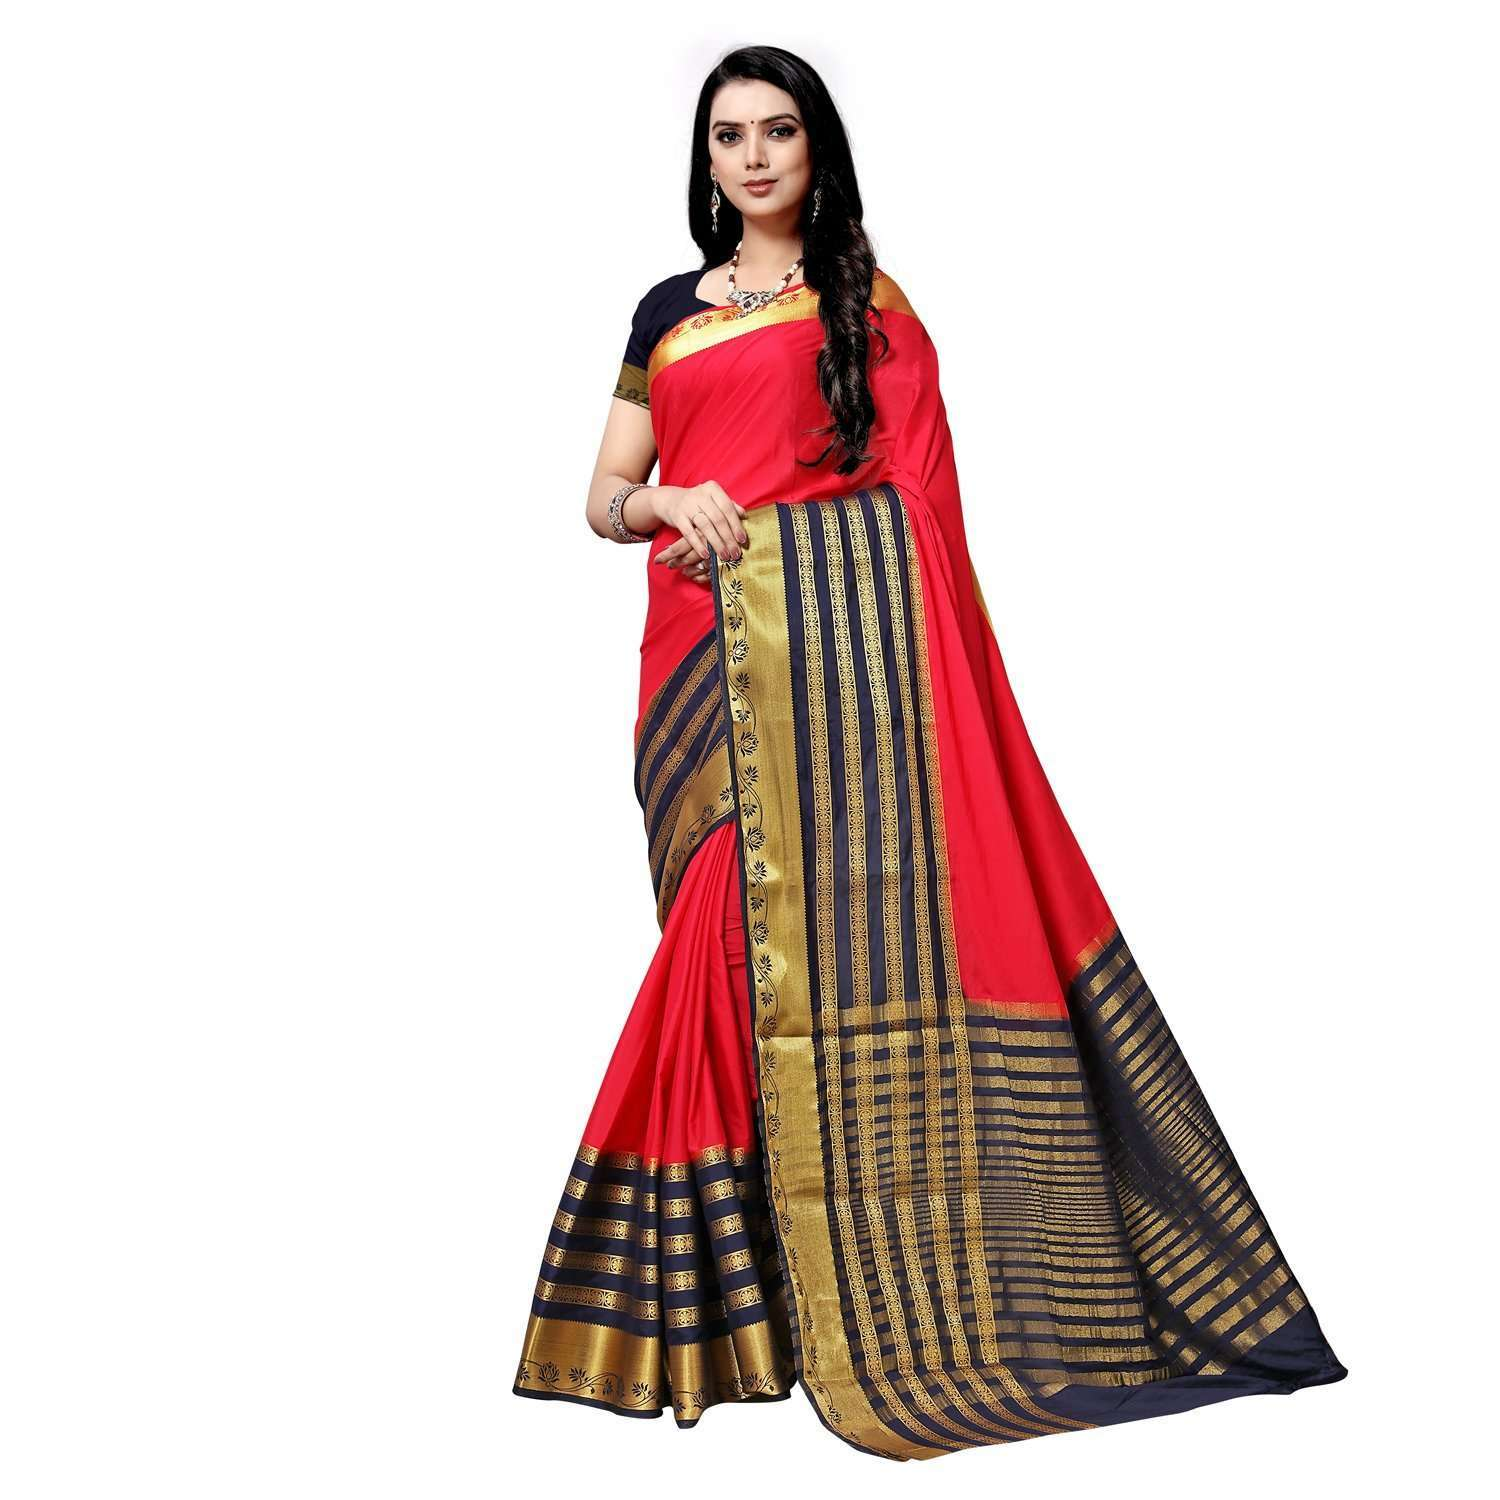 arars Women's kanchipuram kanjivaram pattu style mysore crepe silk saree with blouse (333,strawberry)